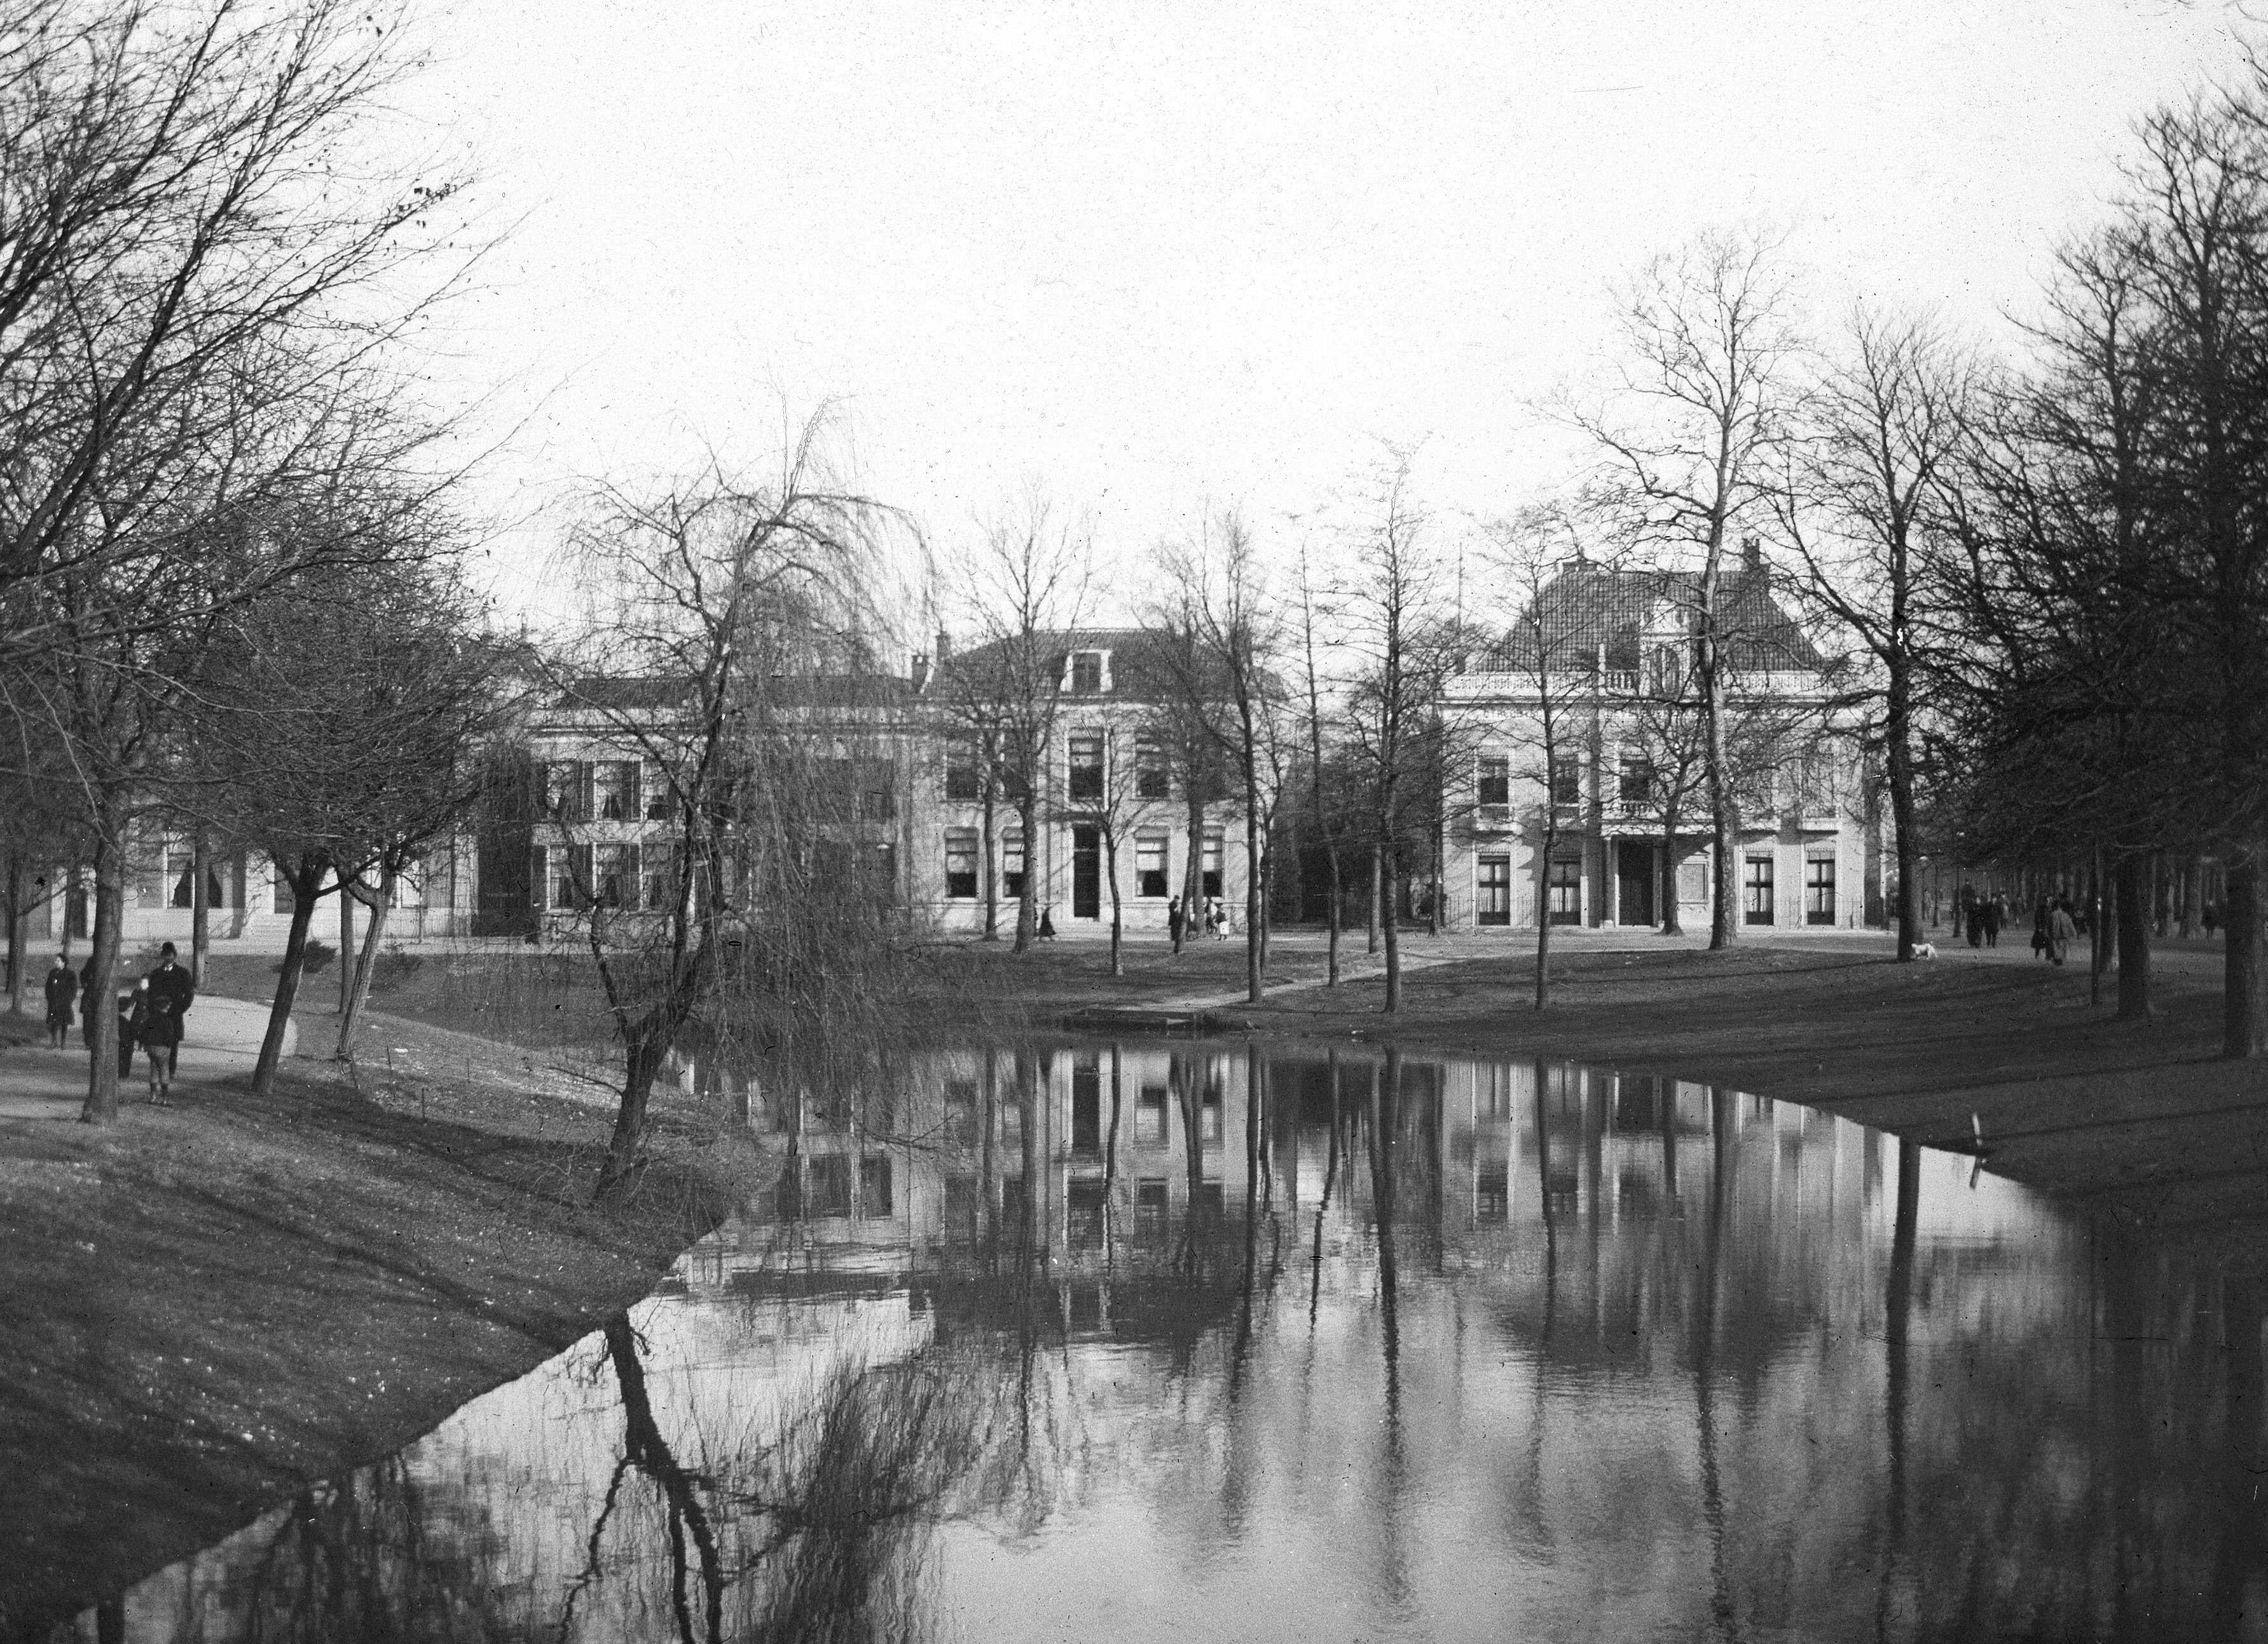 Rustenburch, Rozenhof en Maliehuis in 1900